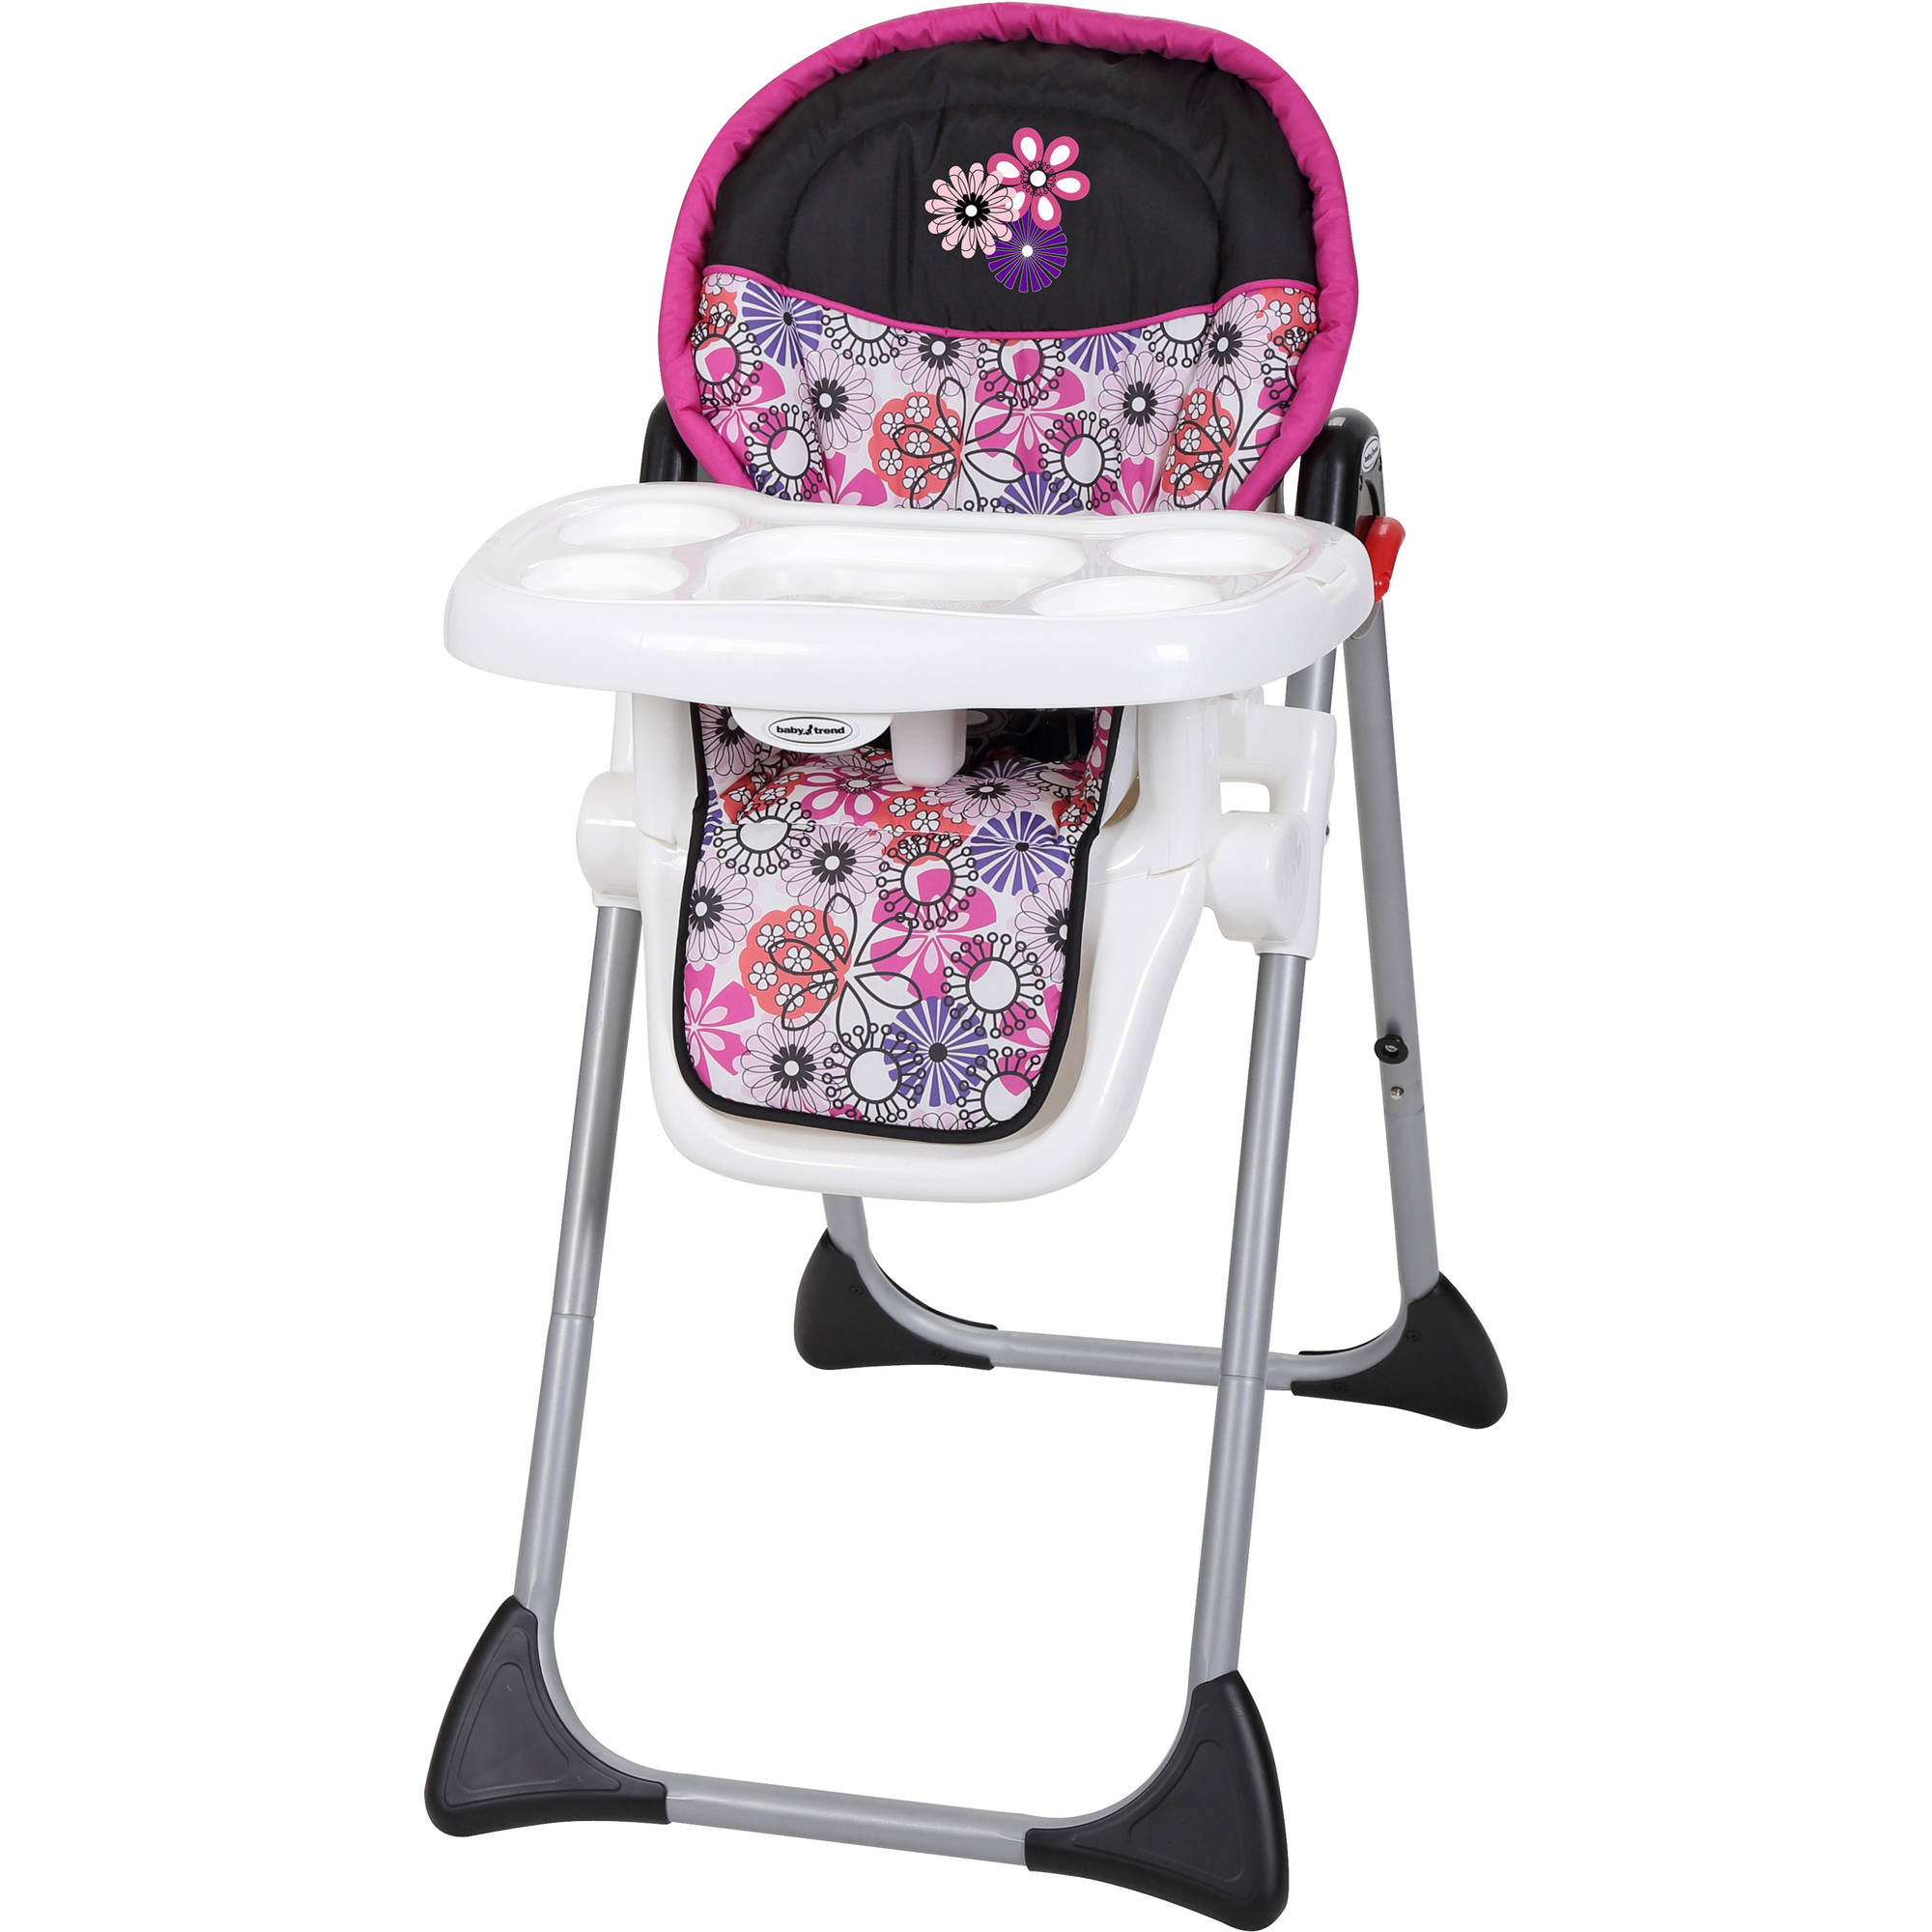 Baby Trend Sit Right High Chair Portable Convertible Baby